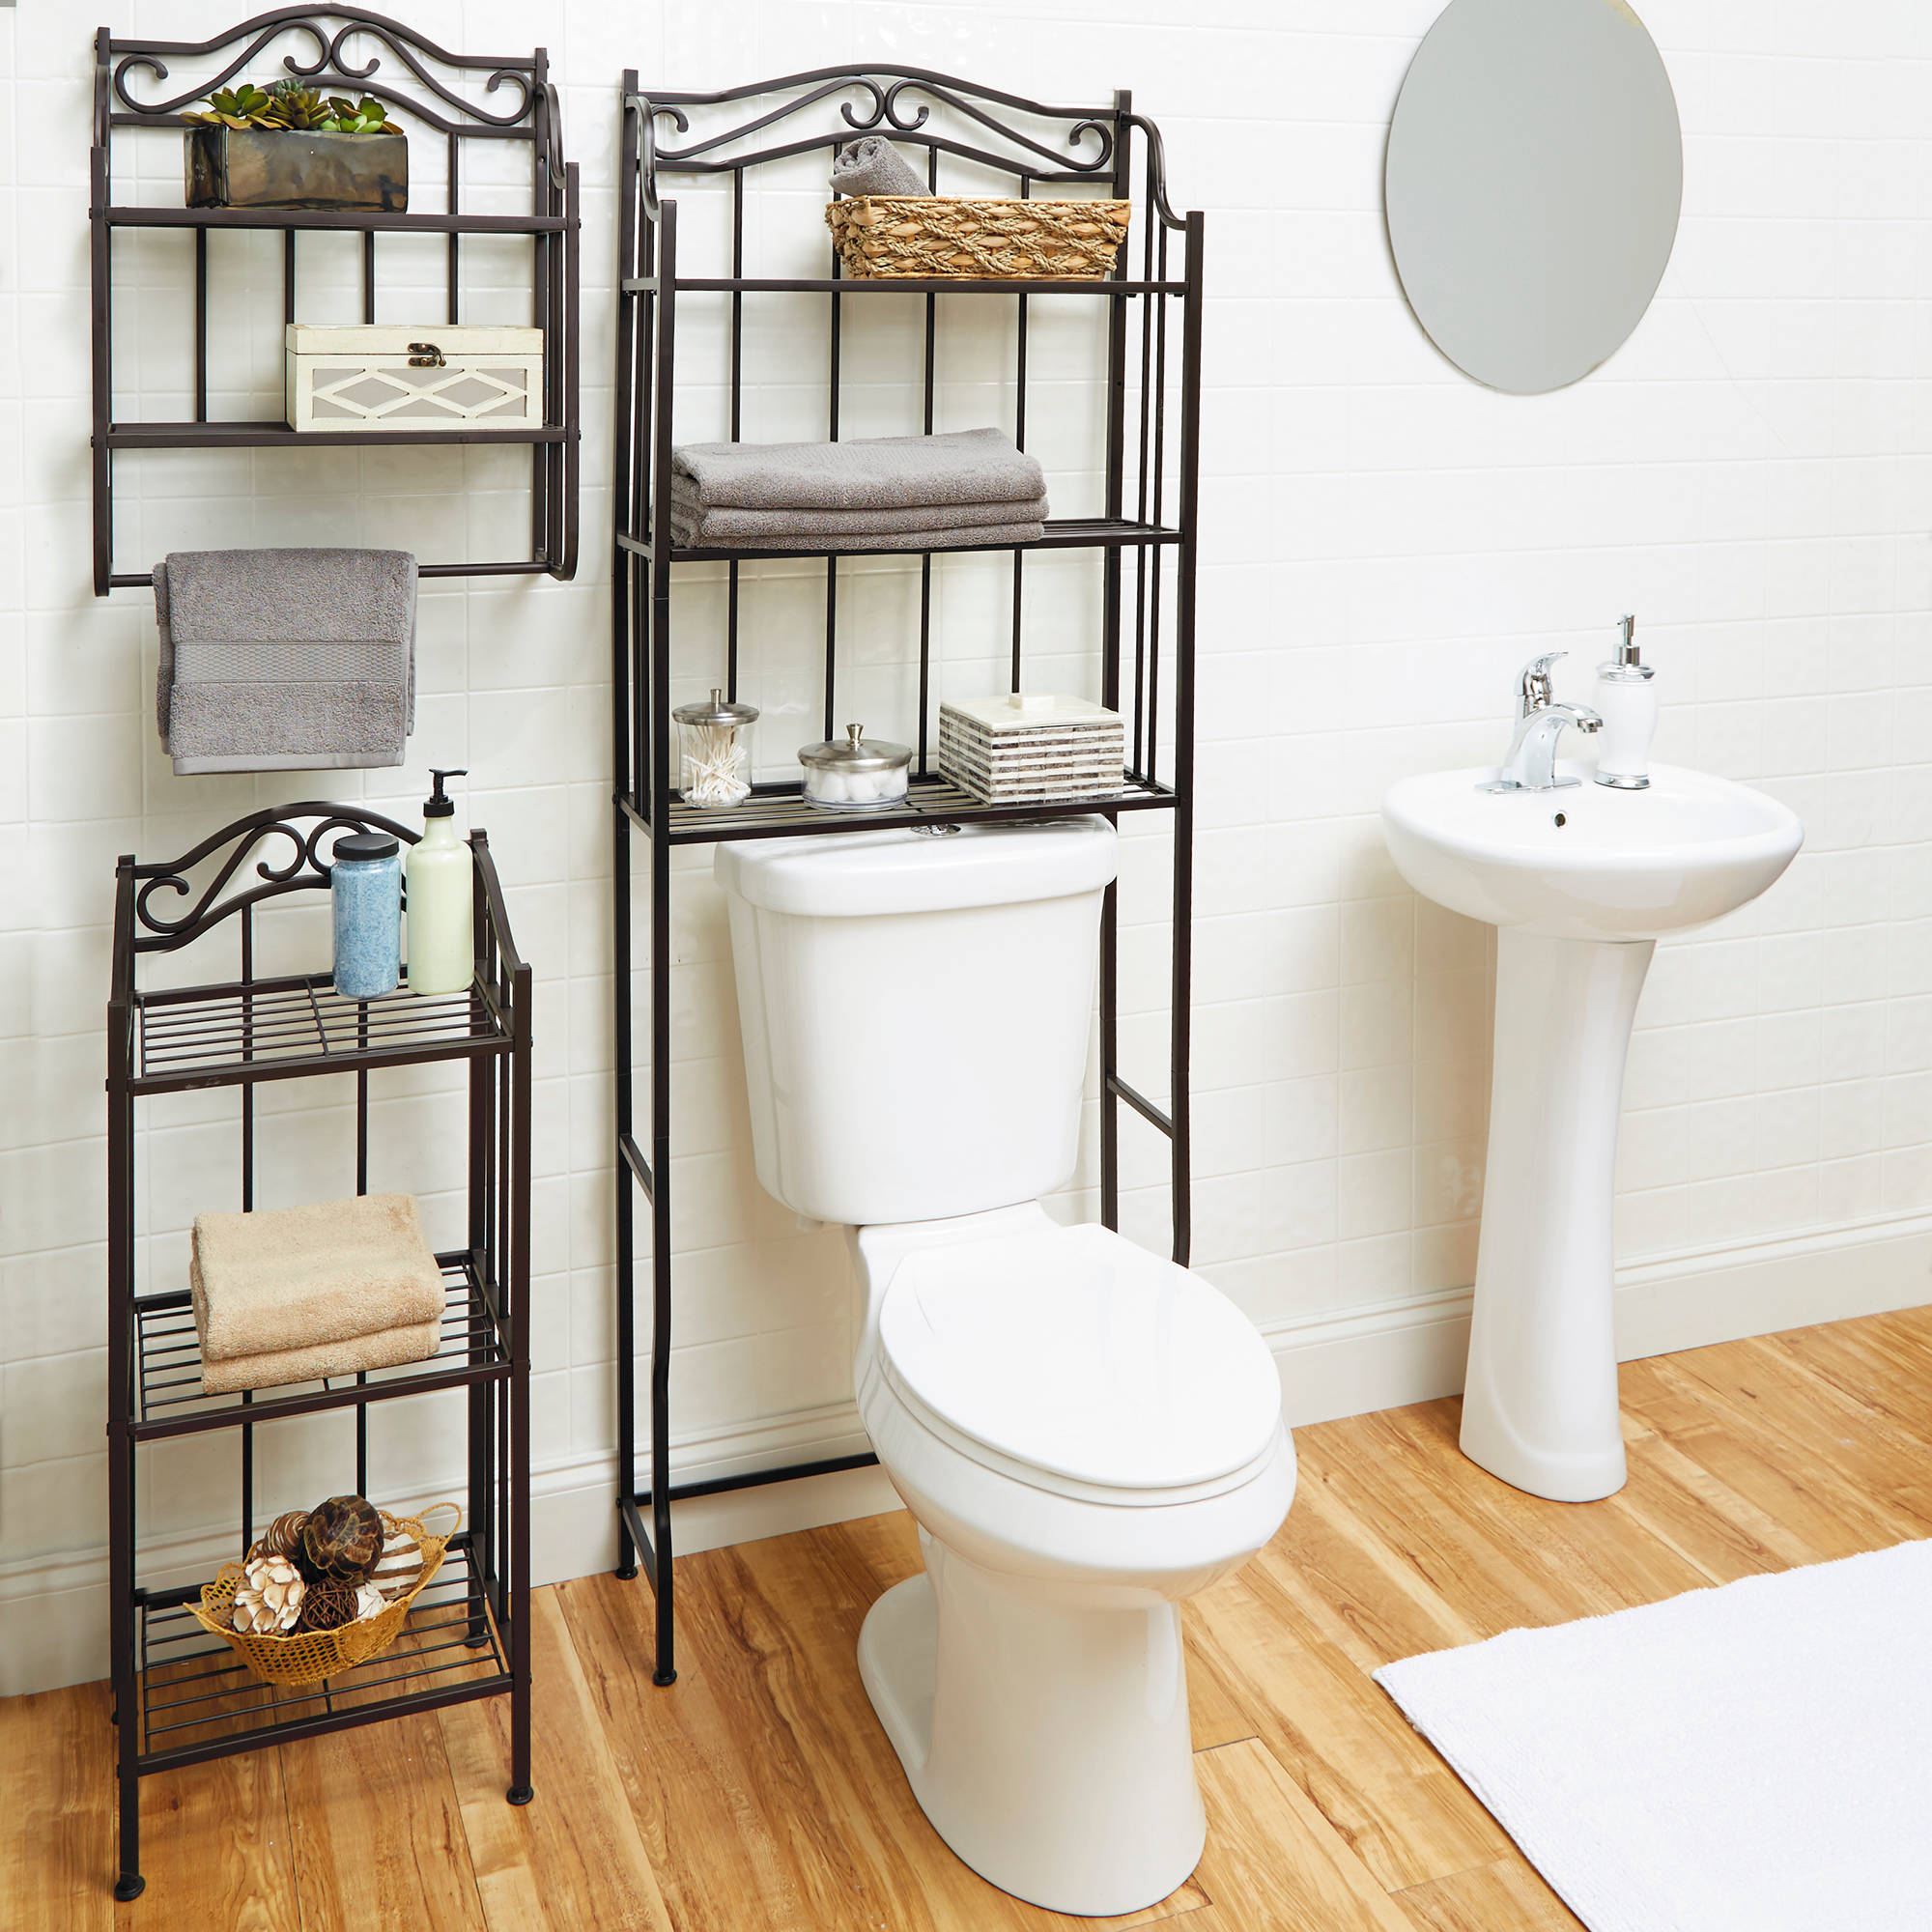 Ordinaire Chapter Bathroom Storage Wall Shelf, Oil Rubbed Bronze Finish   Walmart.com